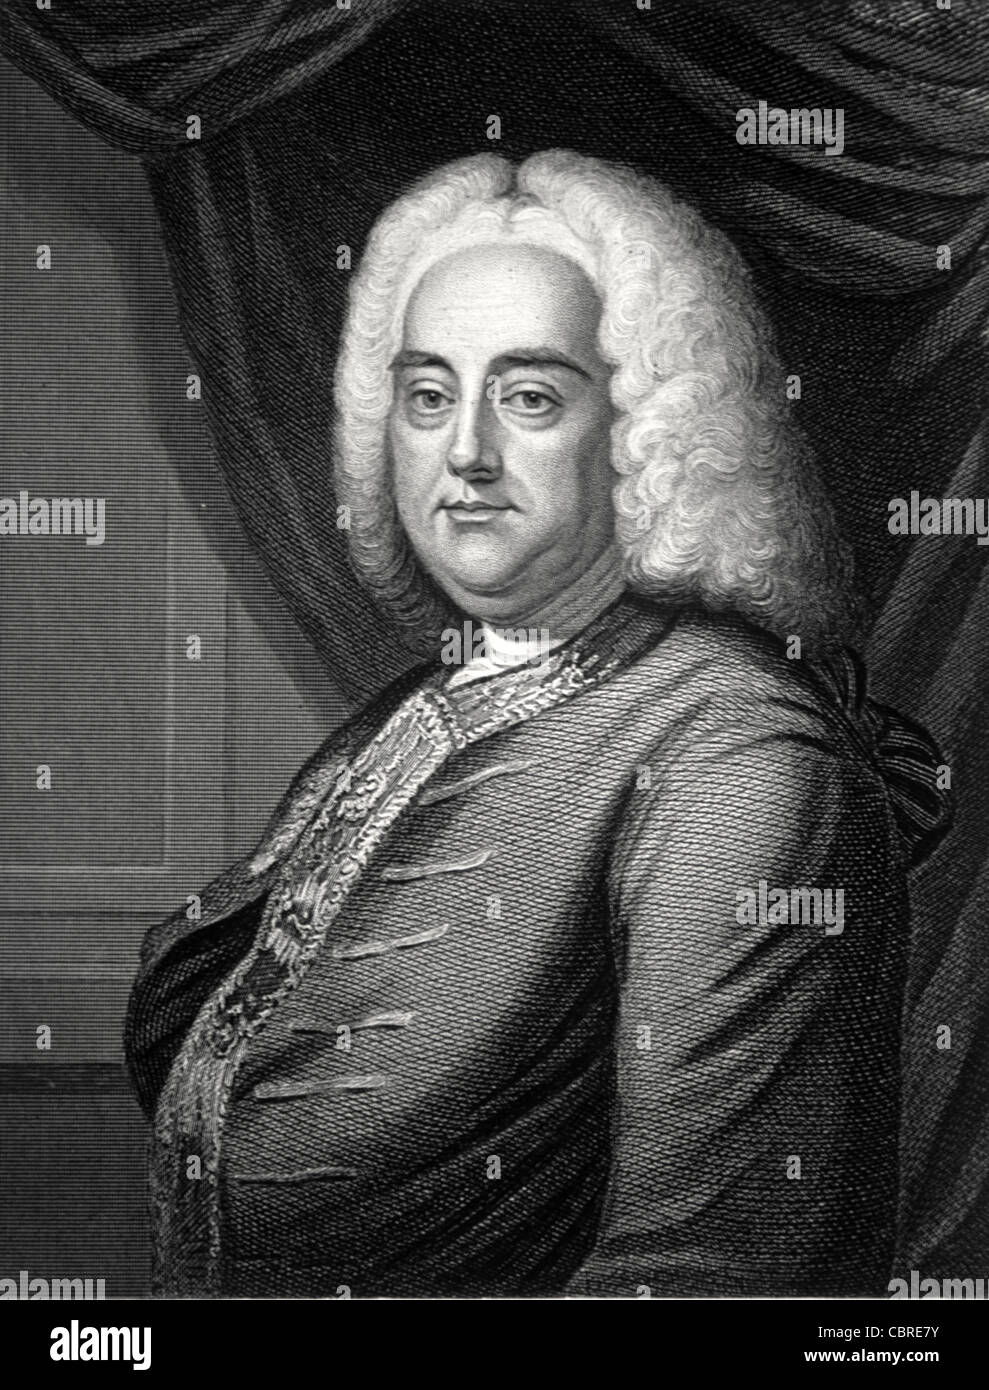 Portrait of George Frederic Handel (1685-1759) German-British Baroque Composer. c19th Engraving by J. Thomson Stock Photo